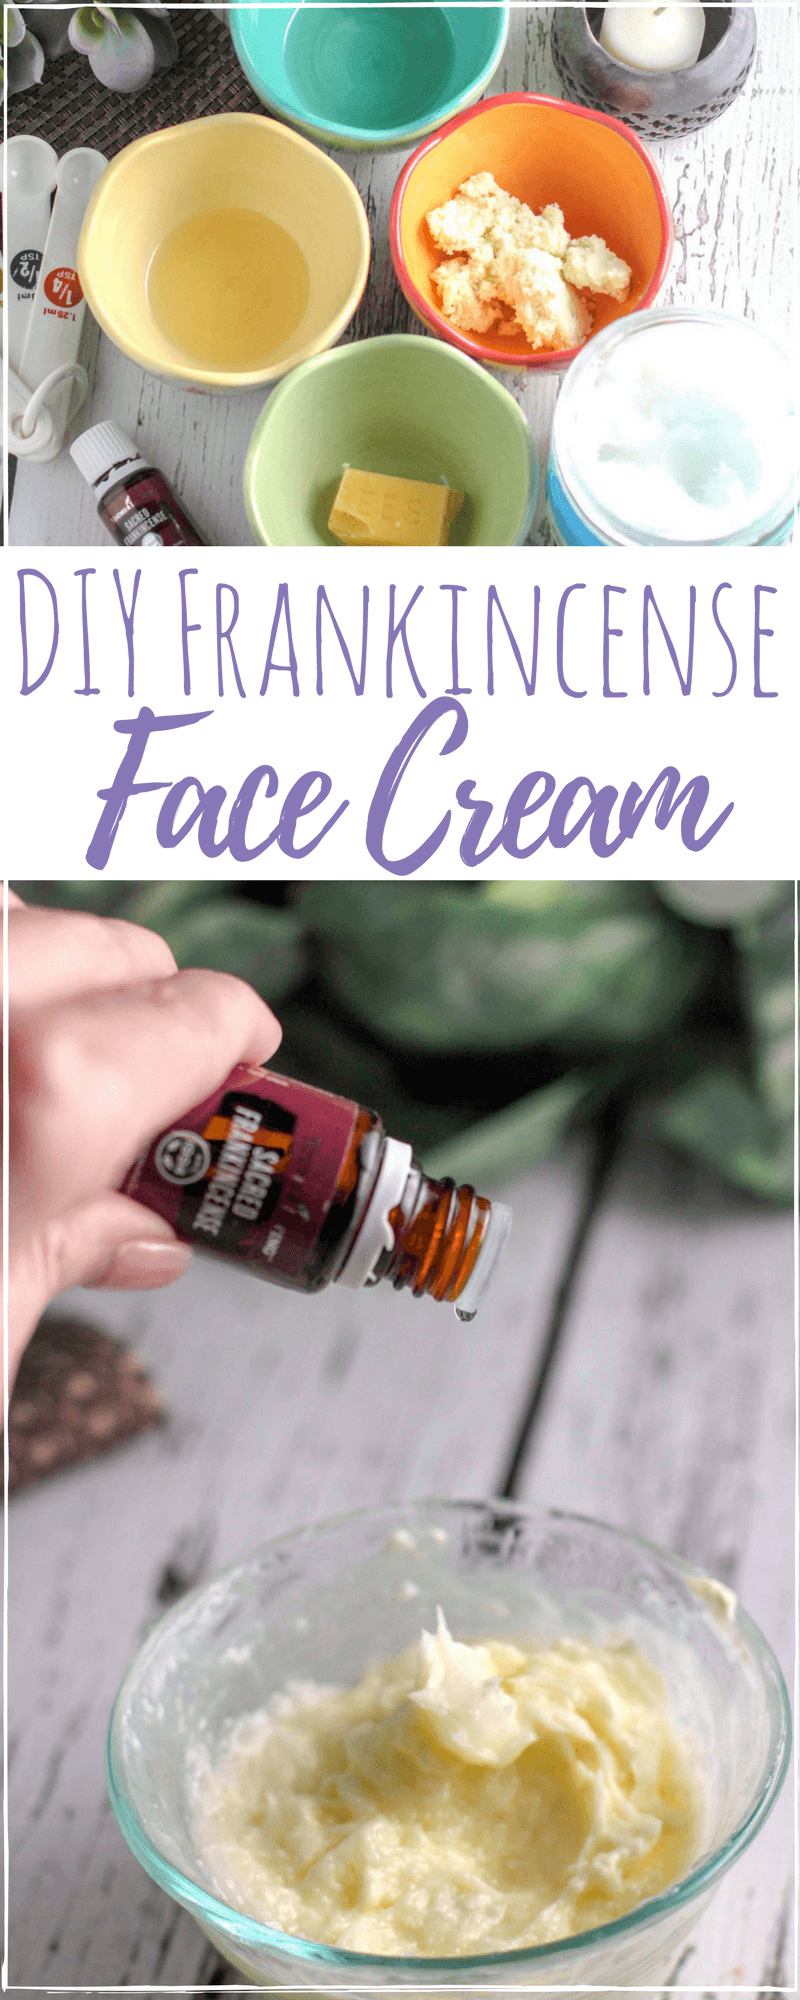 DIY frankincense face cream is the perfect anti-aging skin care you can trust. Non-toxic and all natural, you will love using this face cream daily. #antiaging#antiagingcream#AntiWrinkle#diyskincare#moisturizing#skincare